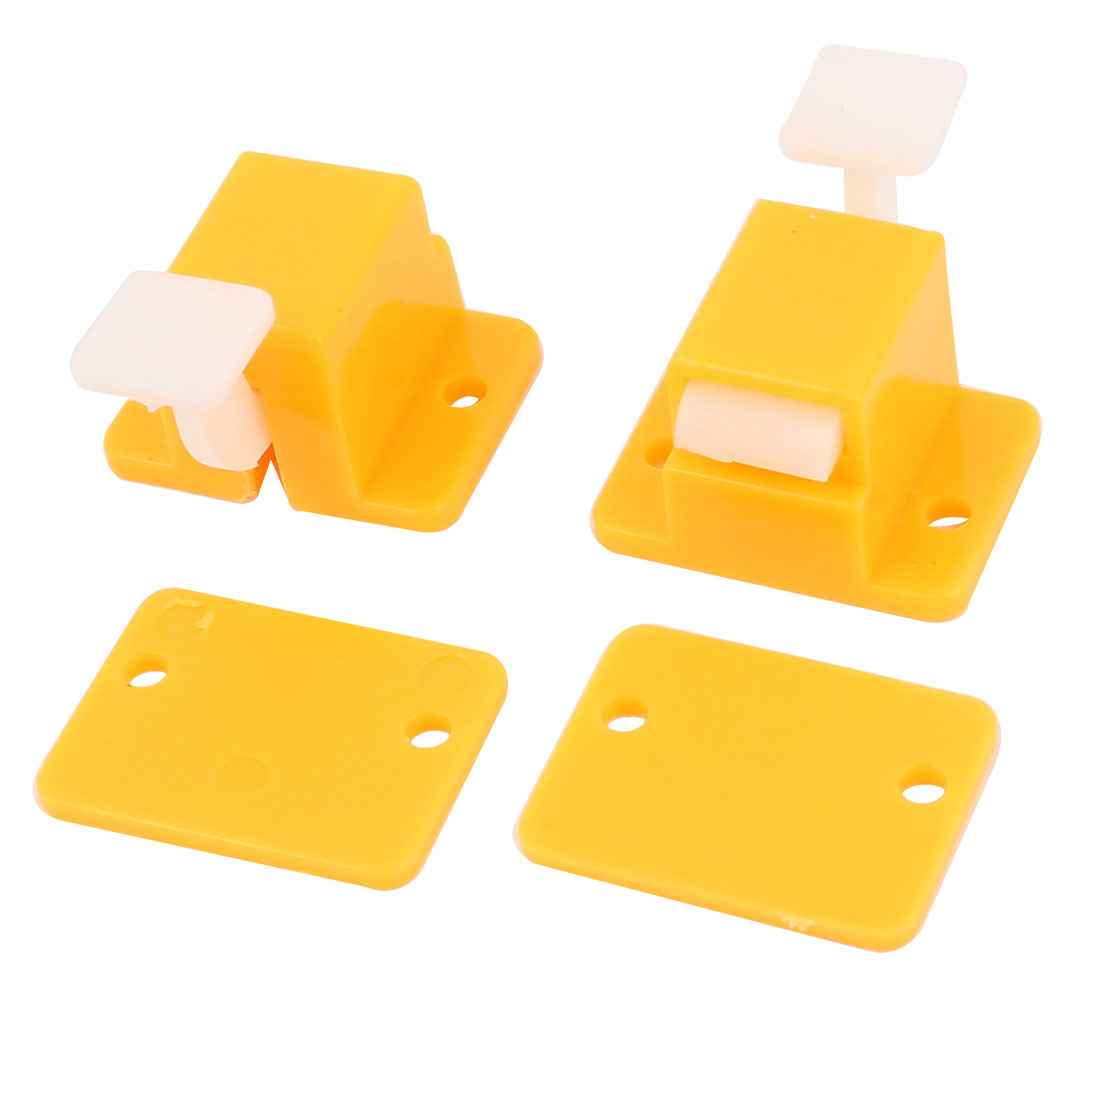 Plastic PCB Board DIY Edge Latch Prototype Test Fixture Jig Yellow 2Pcs